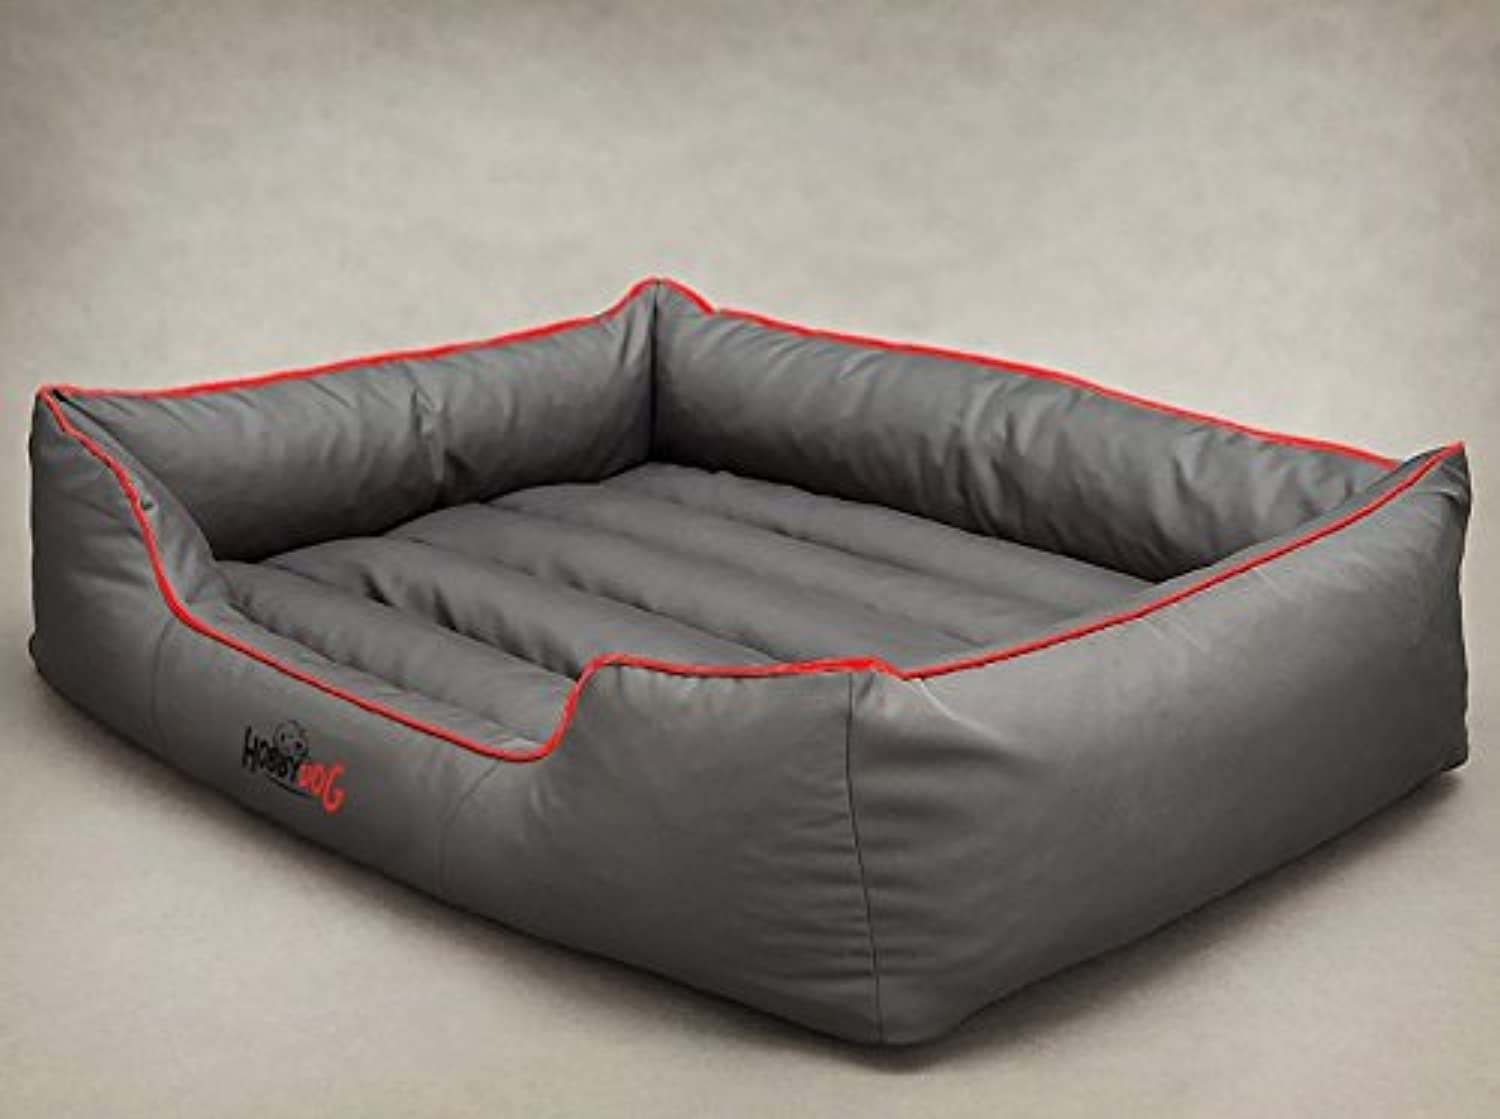 HOBBYDOG Cordura Comfort Dog Bed, 2XLarge, Grey Red Piping